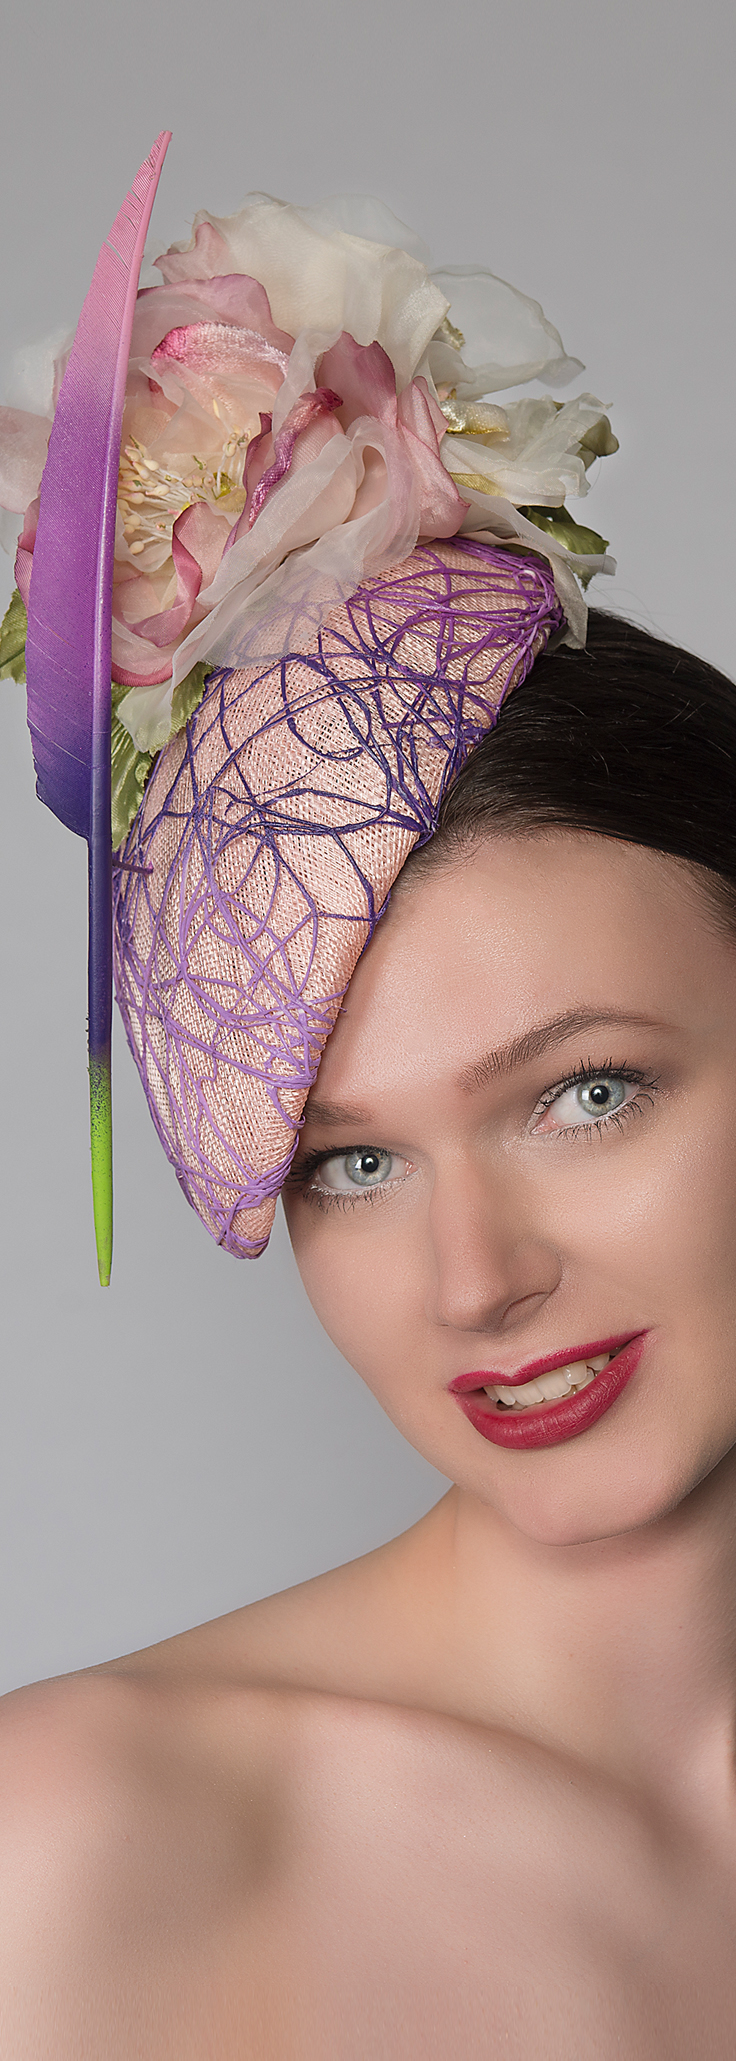 Ladies Designer Hat Hire, Book online for Royal Ascot. The only Hat Hire at Royal Ascot Races. Hats for other events available on Mail Order. Hats from Philip Treacy, Jane Taylor, Bundle Maclaren, Rosie Olivia, Nigel Rayment and other leading Milliners.